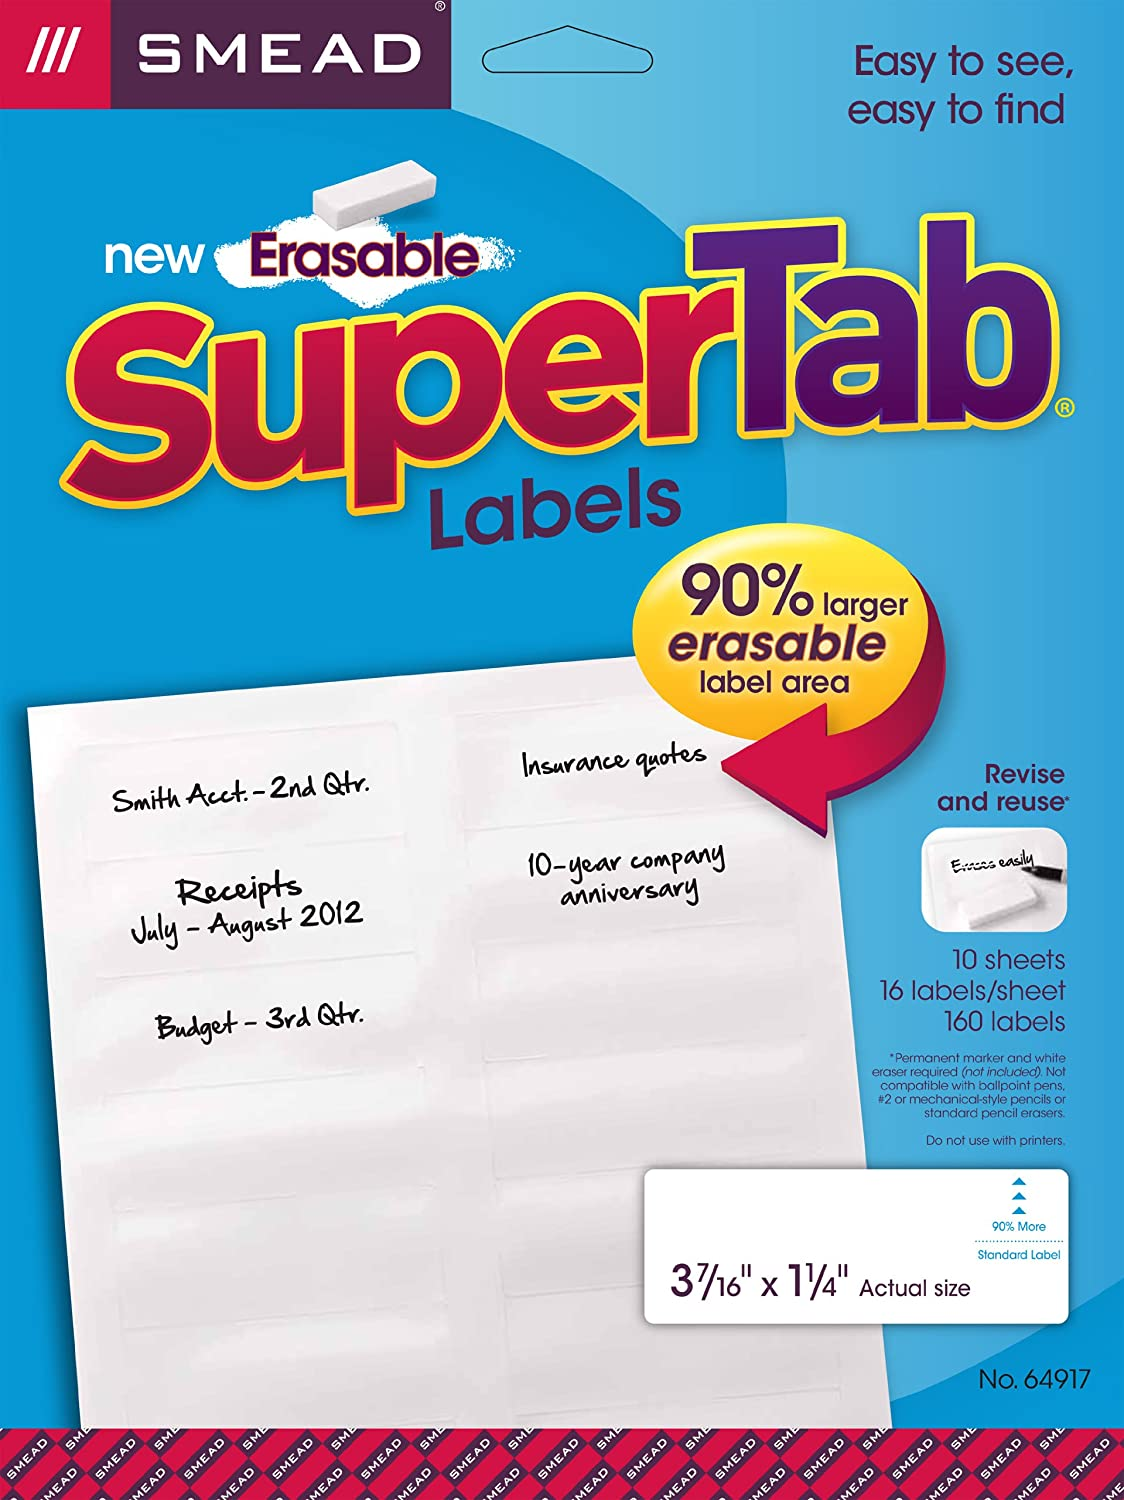 Smead Erasable SuperTab File Folder Labels, White, 160 Labels per Pack (64917)